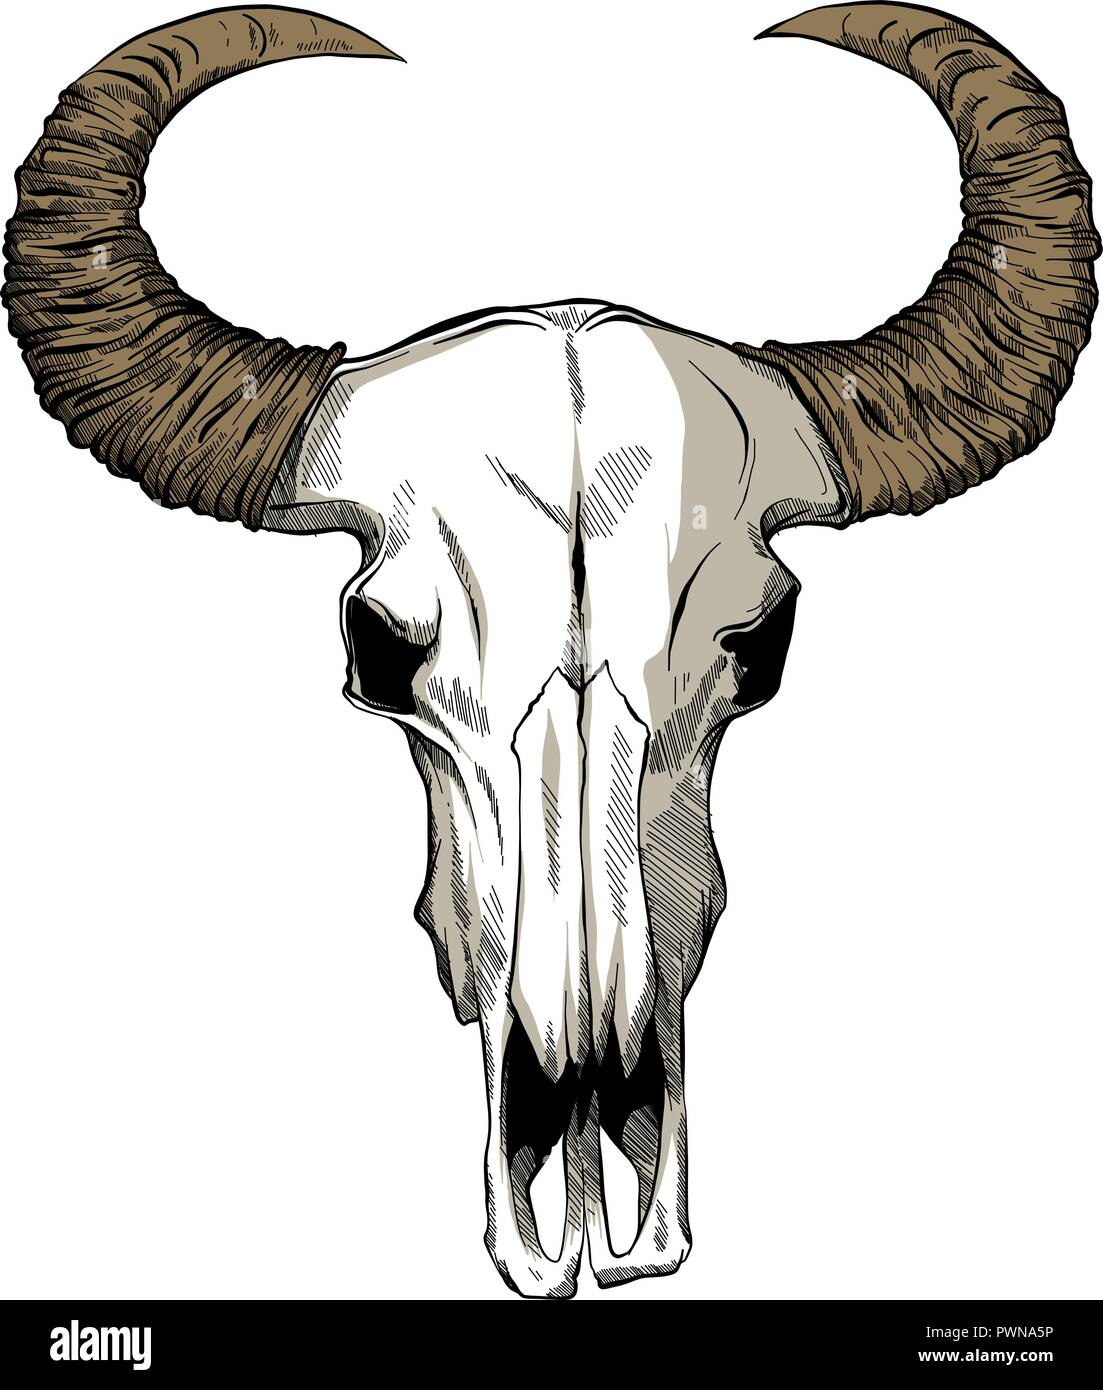 Illustration with goat skull. Hand drawn. Vector. - Stock Image